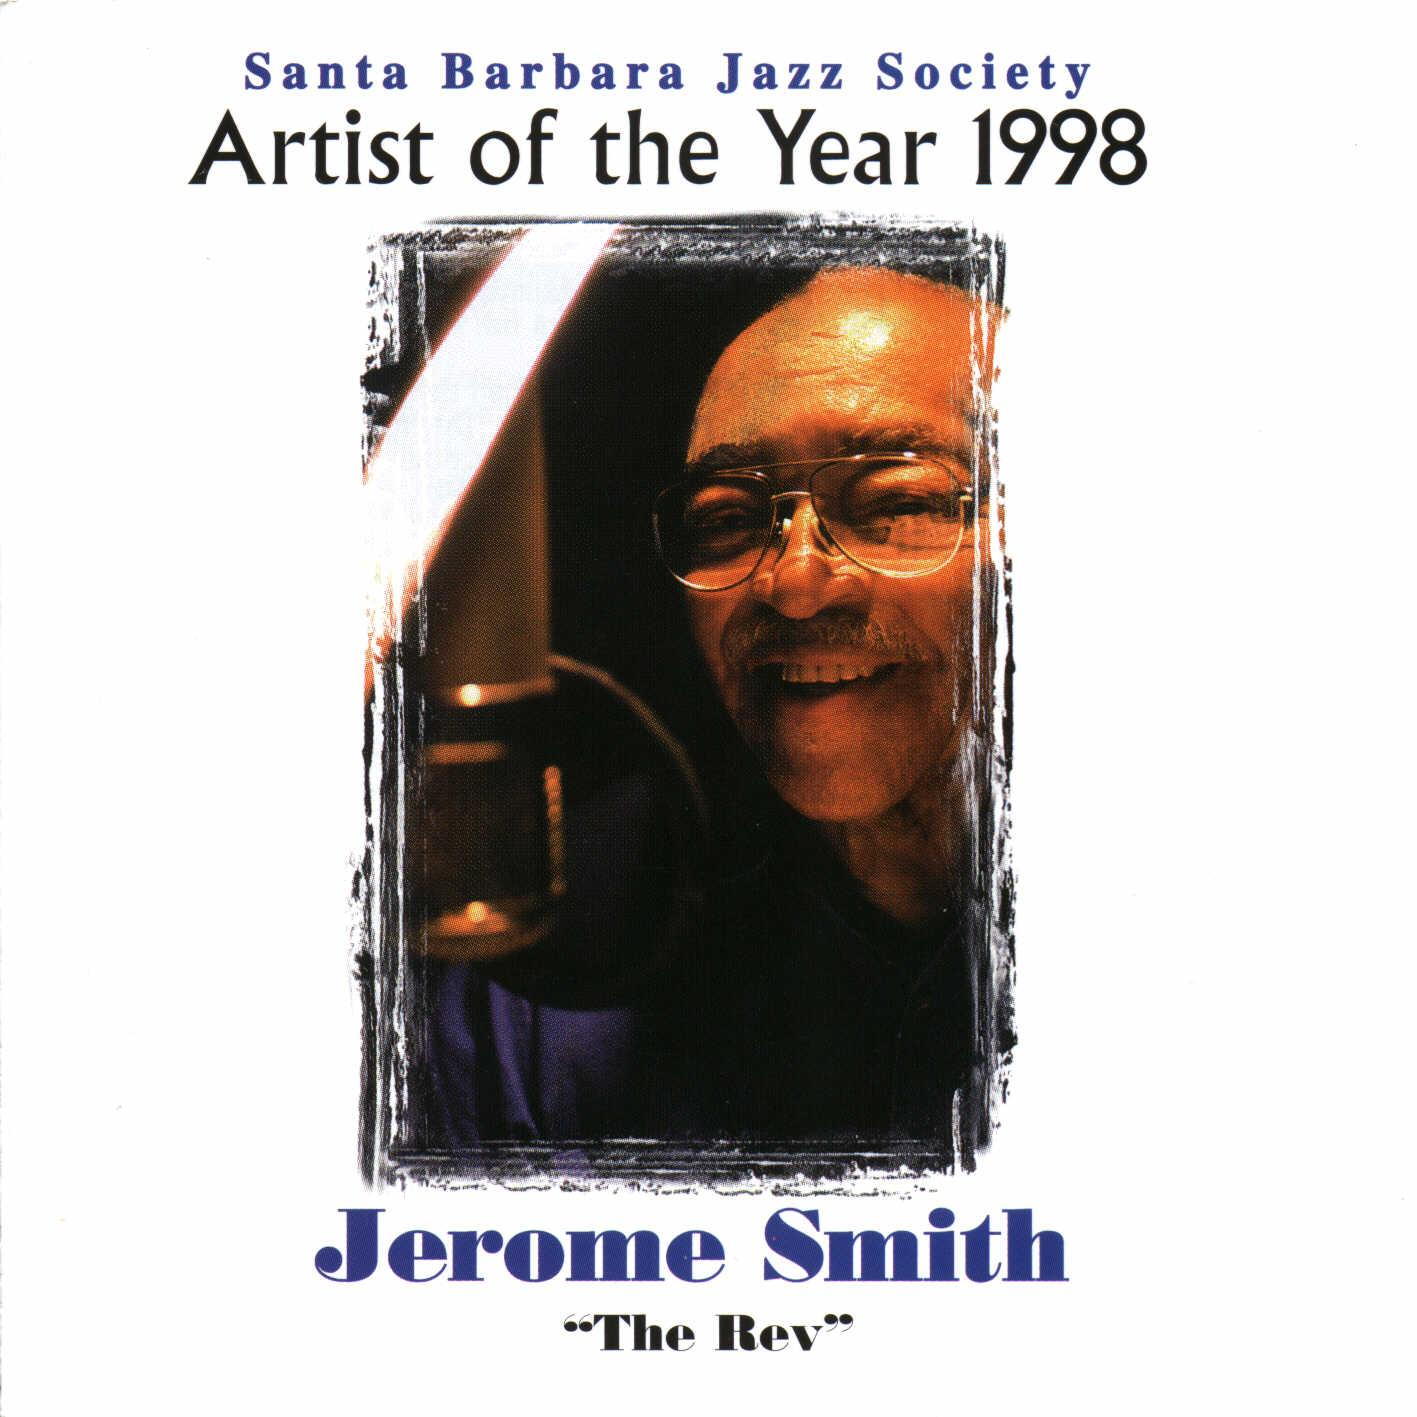 Jerome Smith CD cover.JPG (178313 bytes)